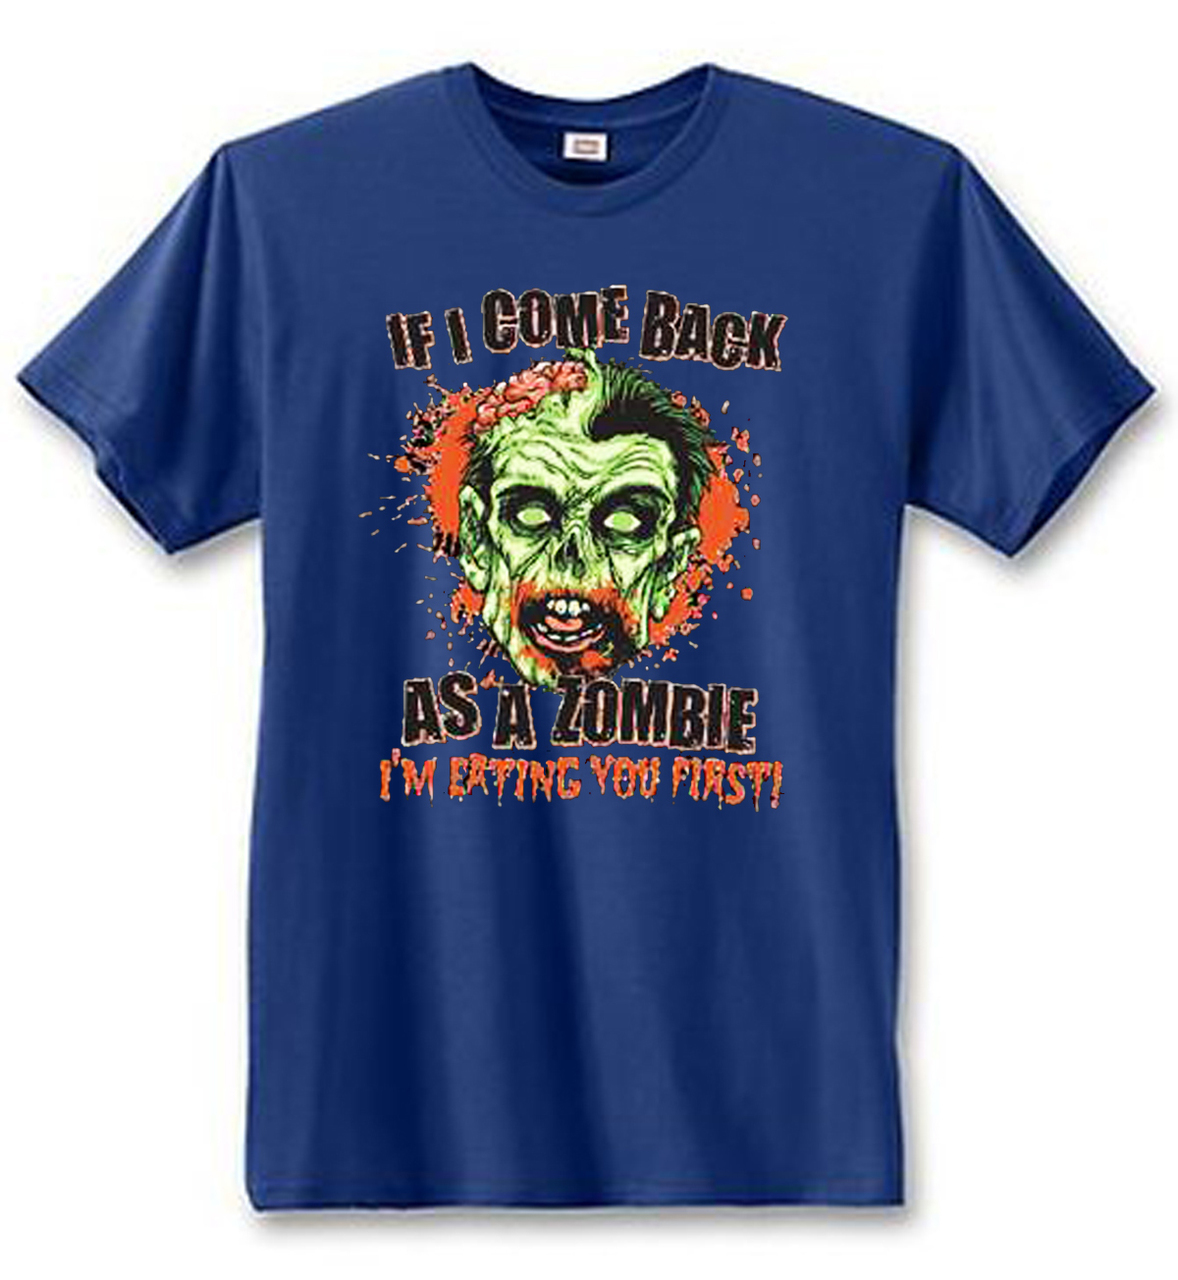 If I Come Back A Zombie I'm Eating You First Women's Short Sleeve T-Shirt